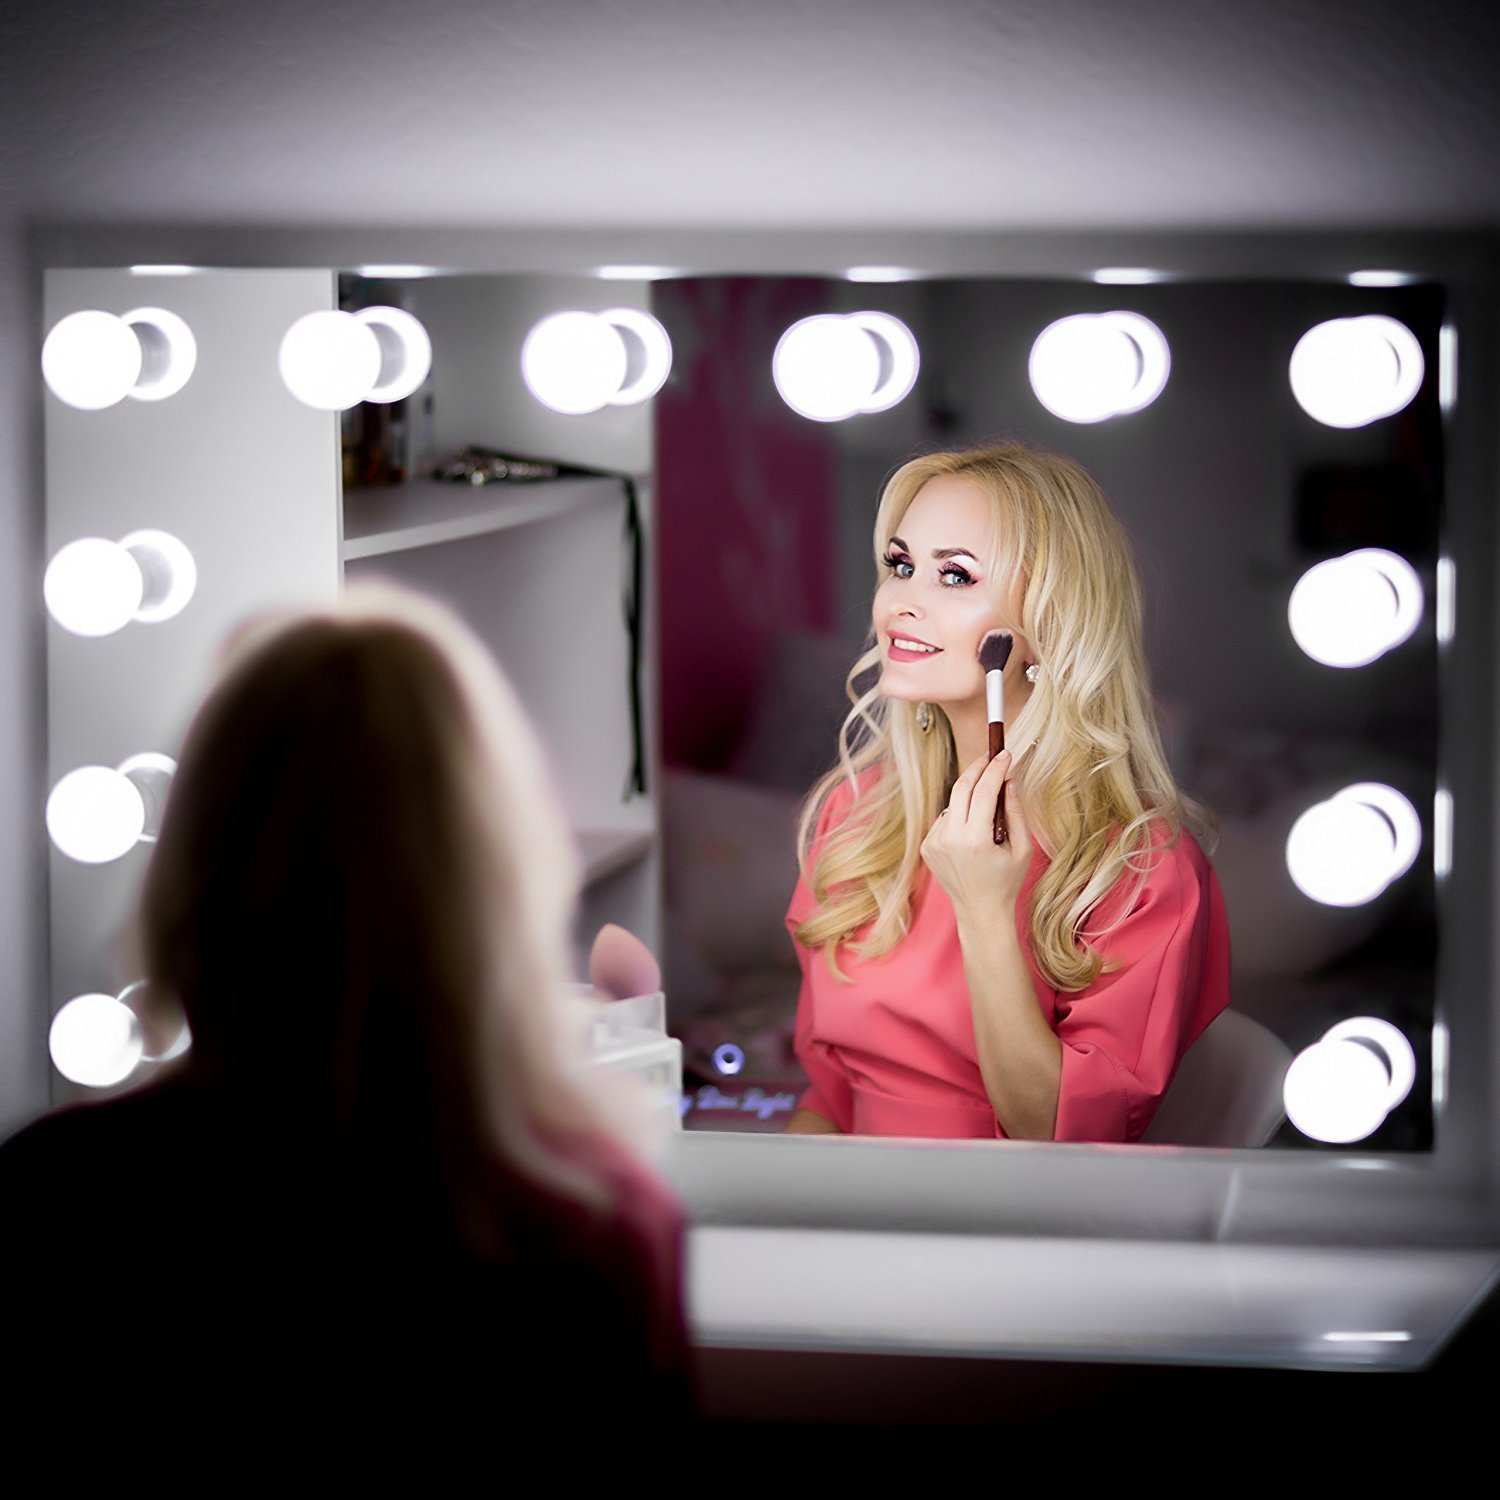 Hollywood Style Vanity Mirror Lights - LED Makeup Vanity Light Kit with 8 Dimmable Bulbs, UL Listed Adapter 6000K Lighting Fixture Strip for Bedroom, Makeup Dressing Table